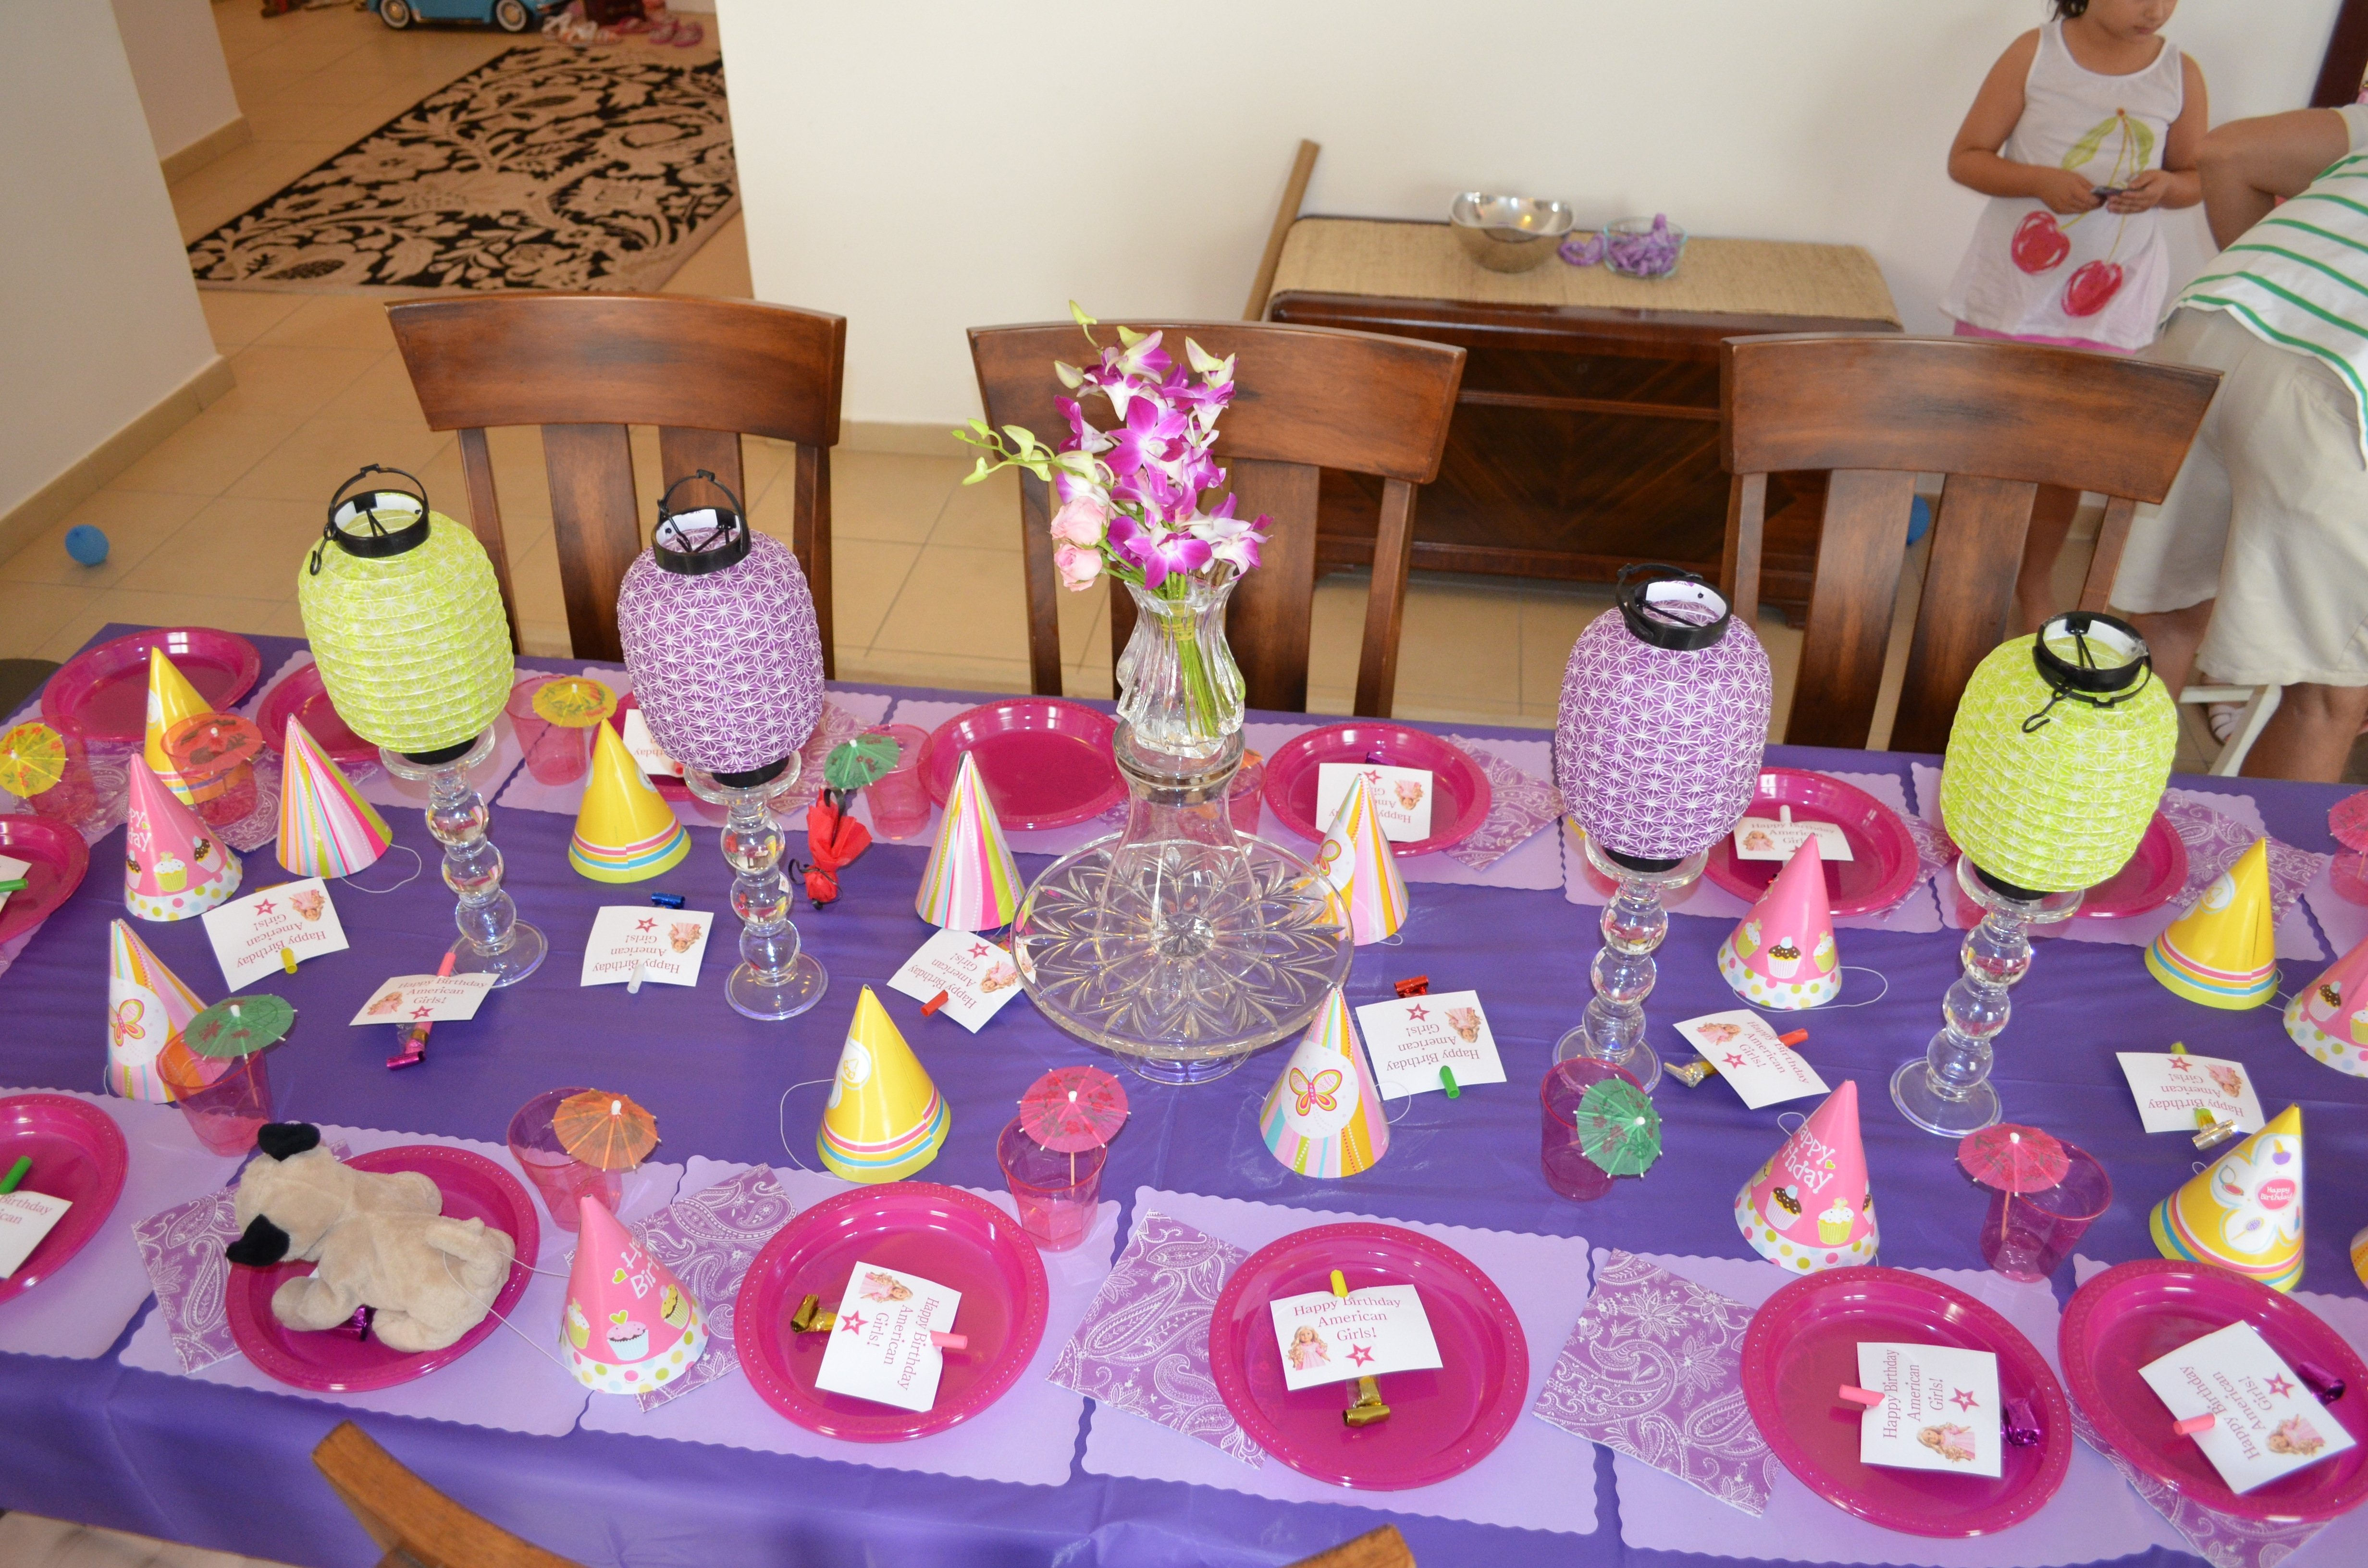 10 Trendy 7 Year Old Girl Birthday Party Ideas birthday party ideas for 5 year old daughter image inspiration of 1 2021